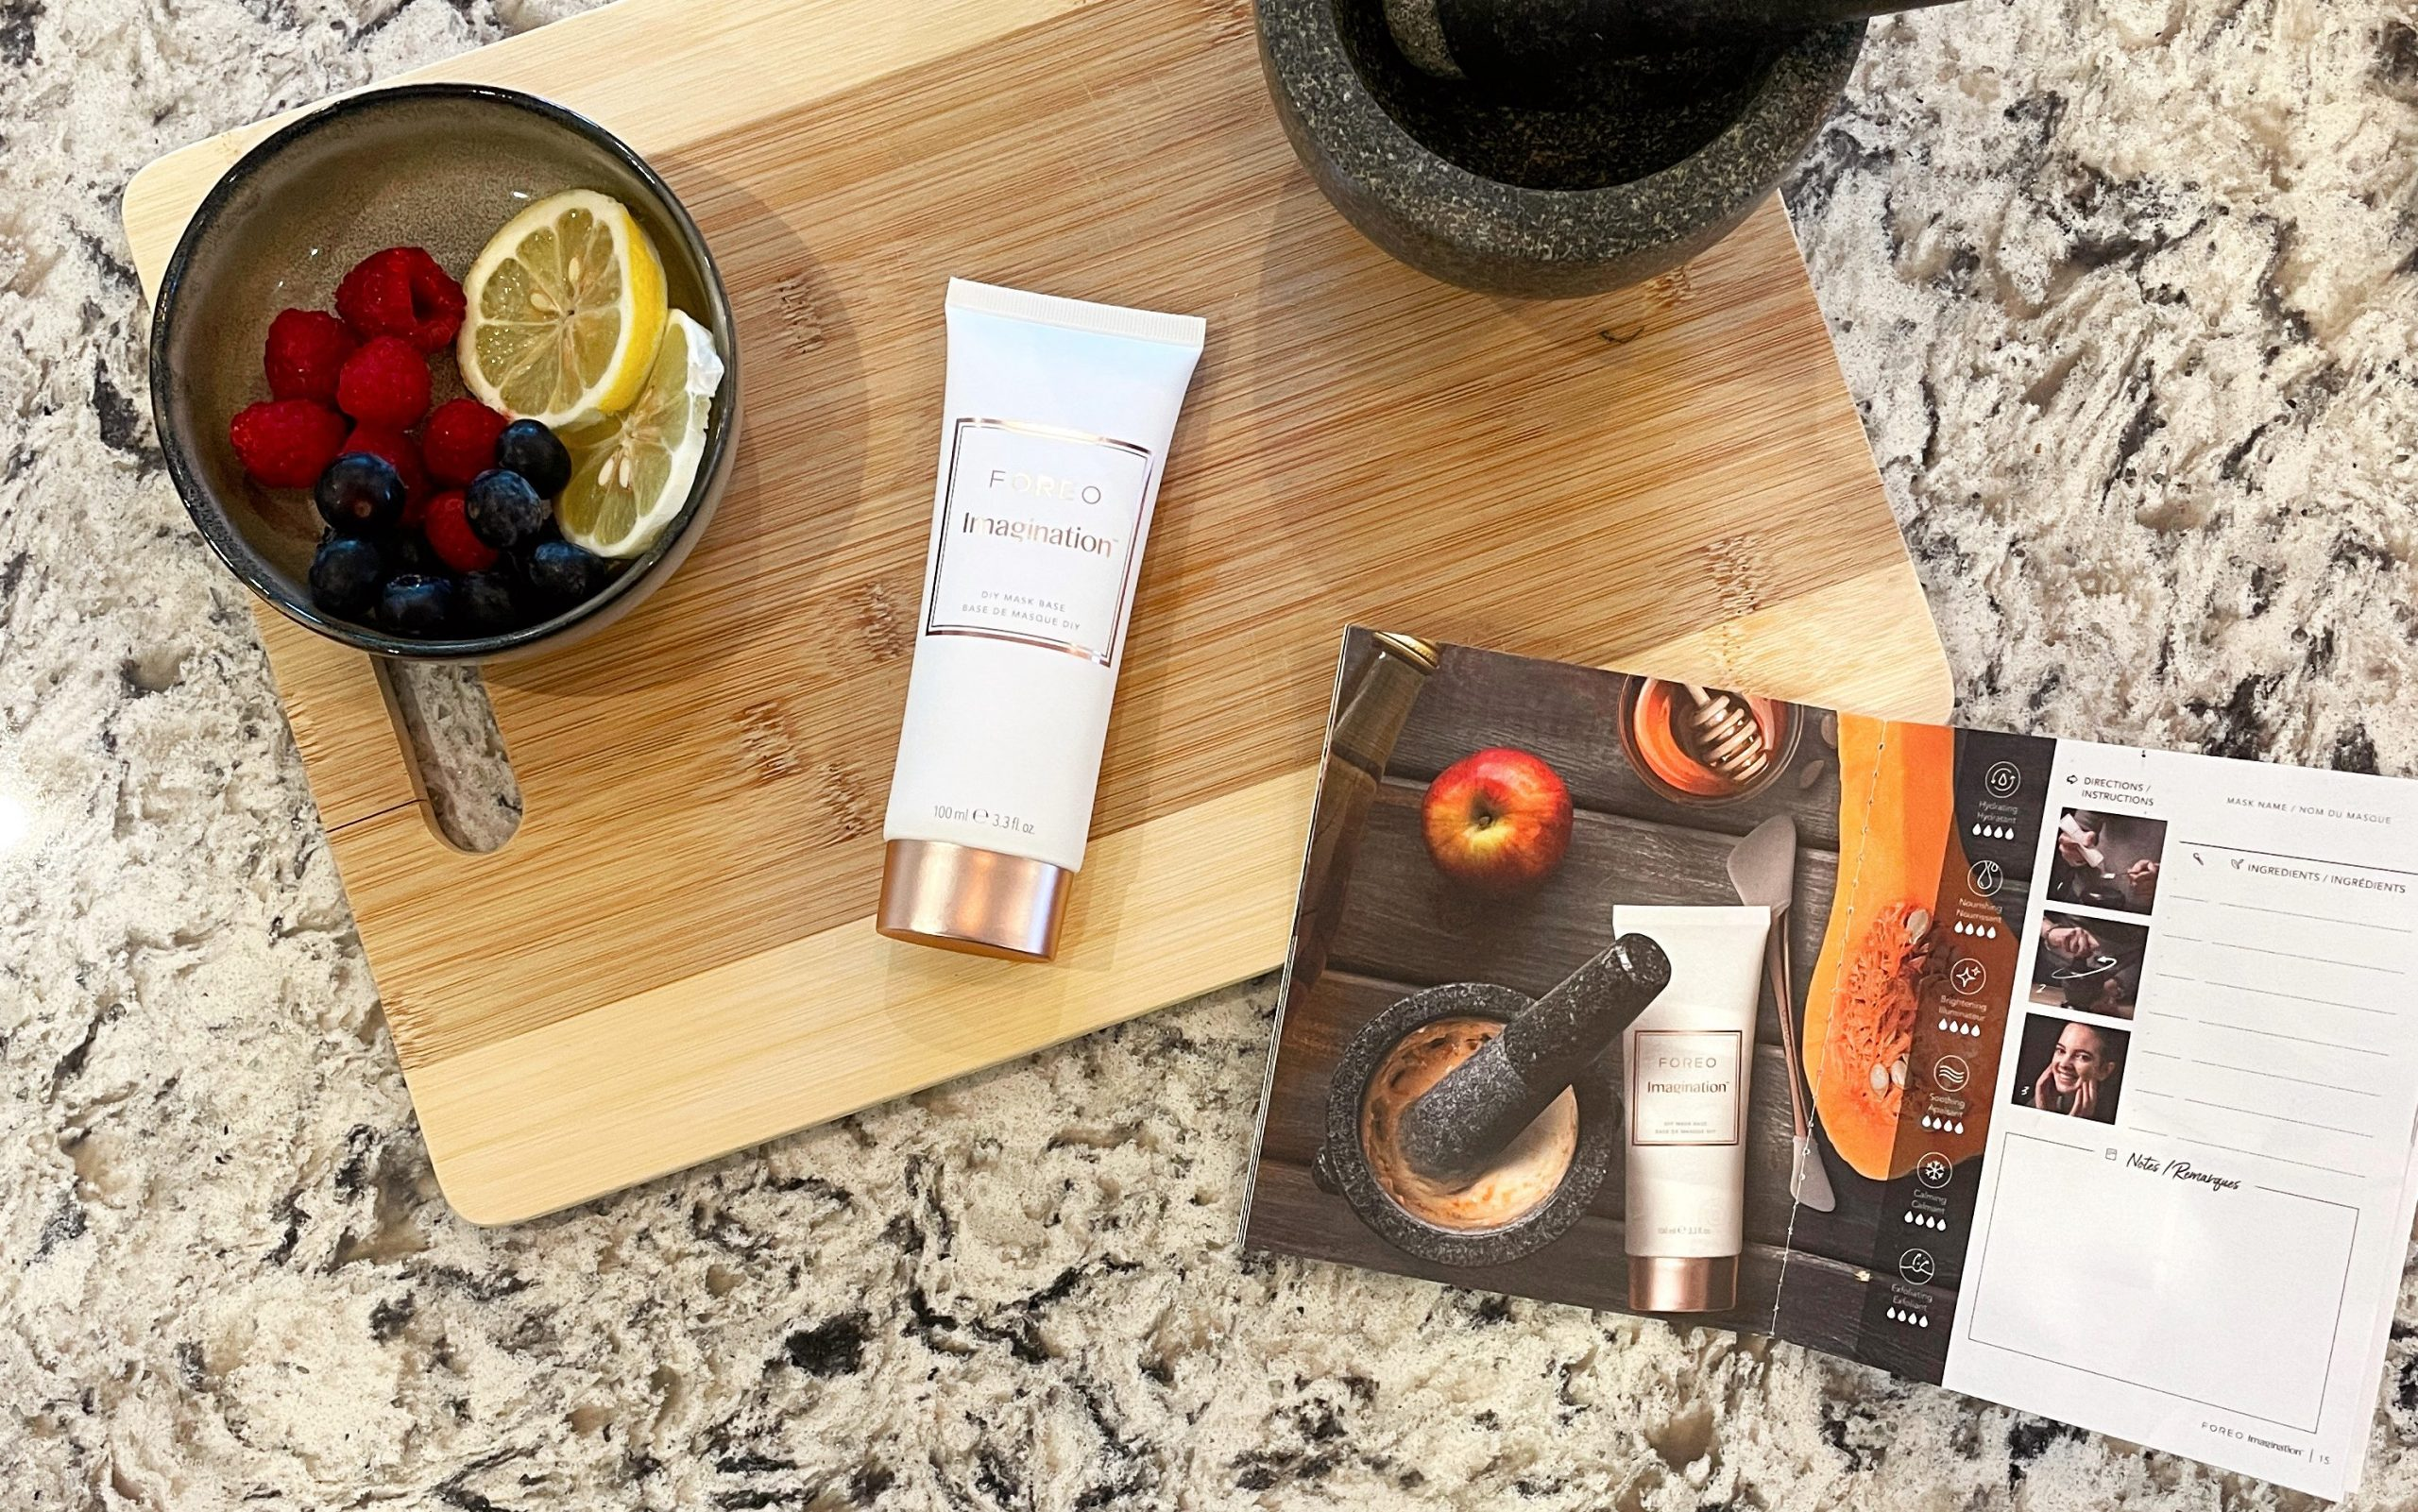 FOREO Imagination mask base and recipe book lying on the kitchen top together with fresh berries for mixing.